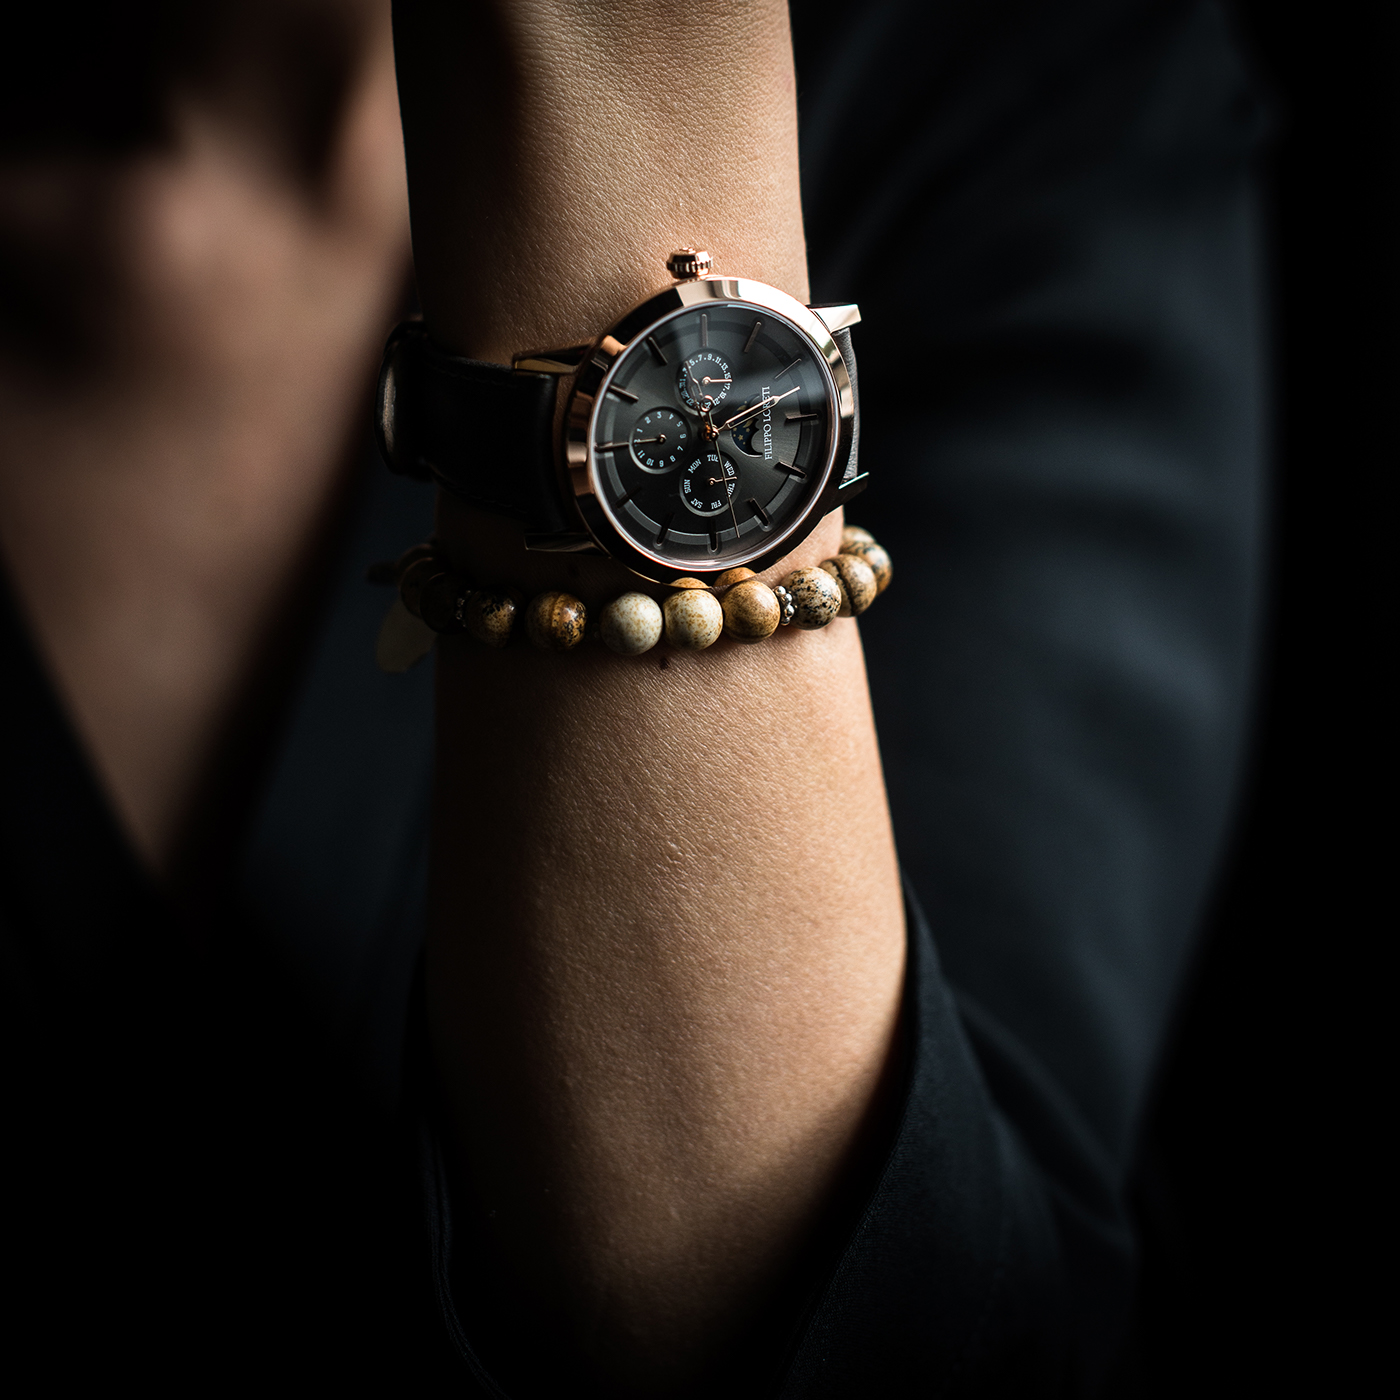 life photography on blue watches fashion jewelry kliton watch still velvet nyc photographer armitron ceku beauty